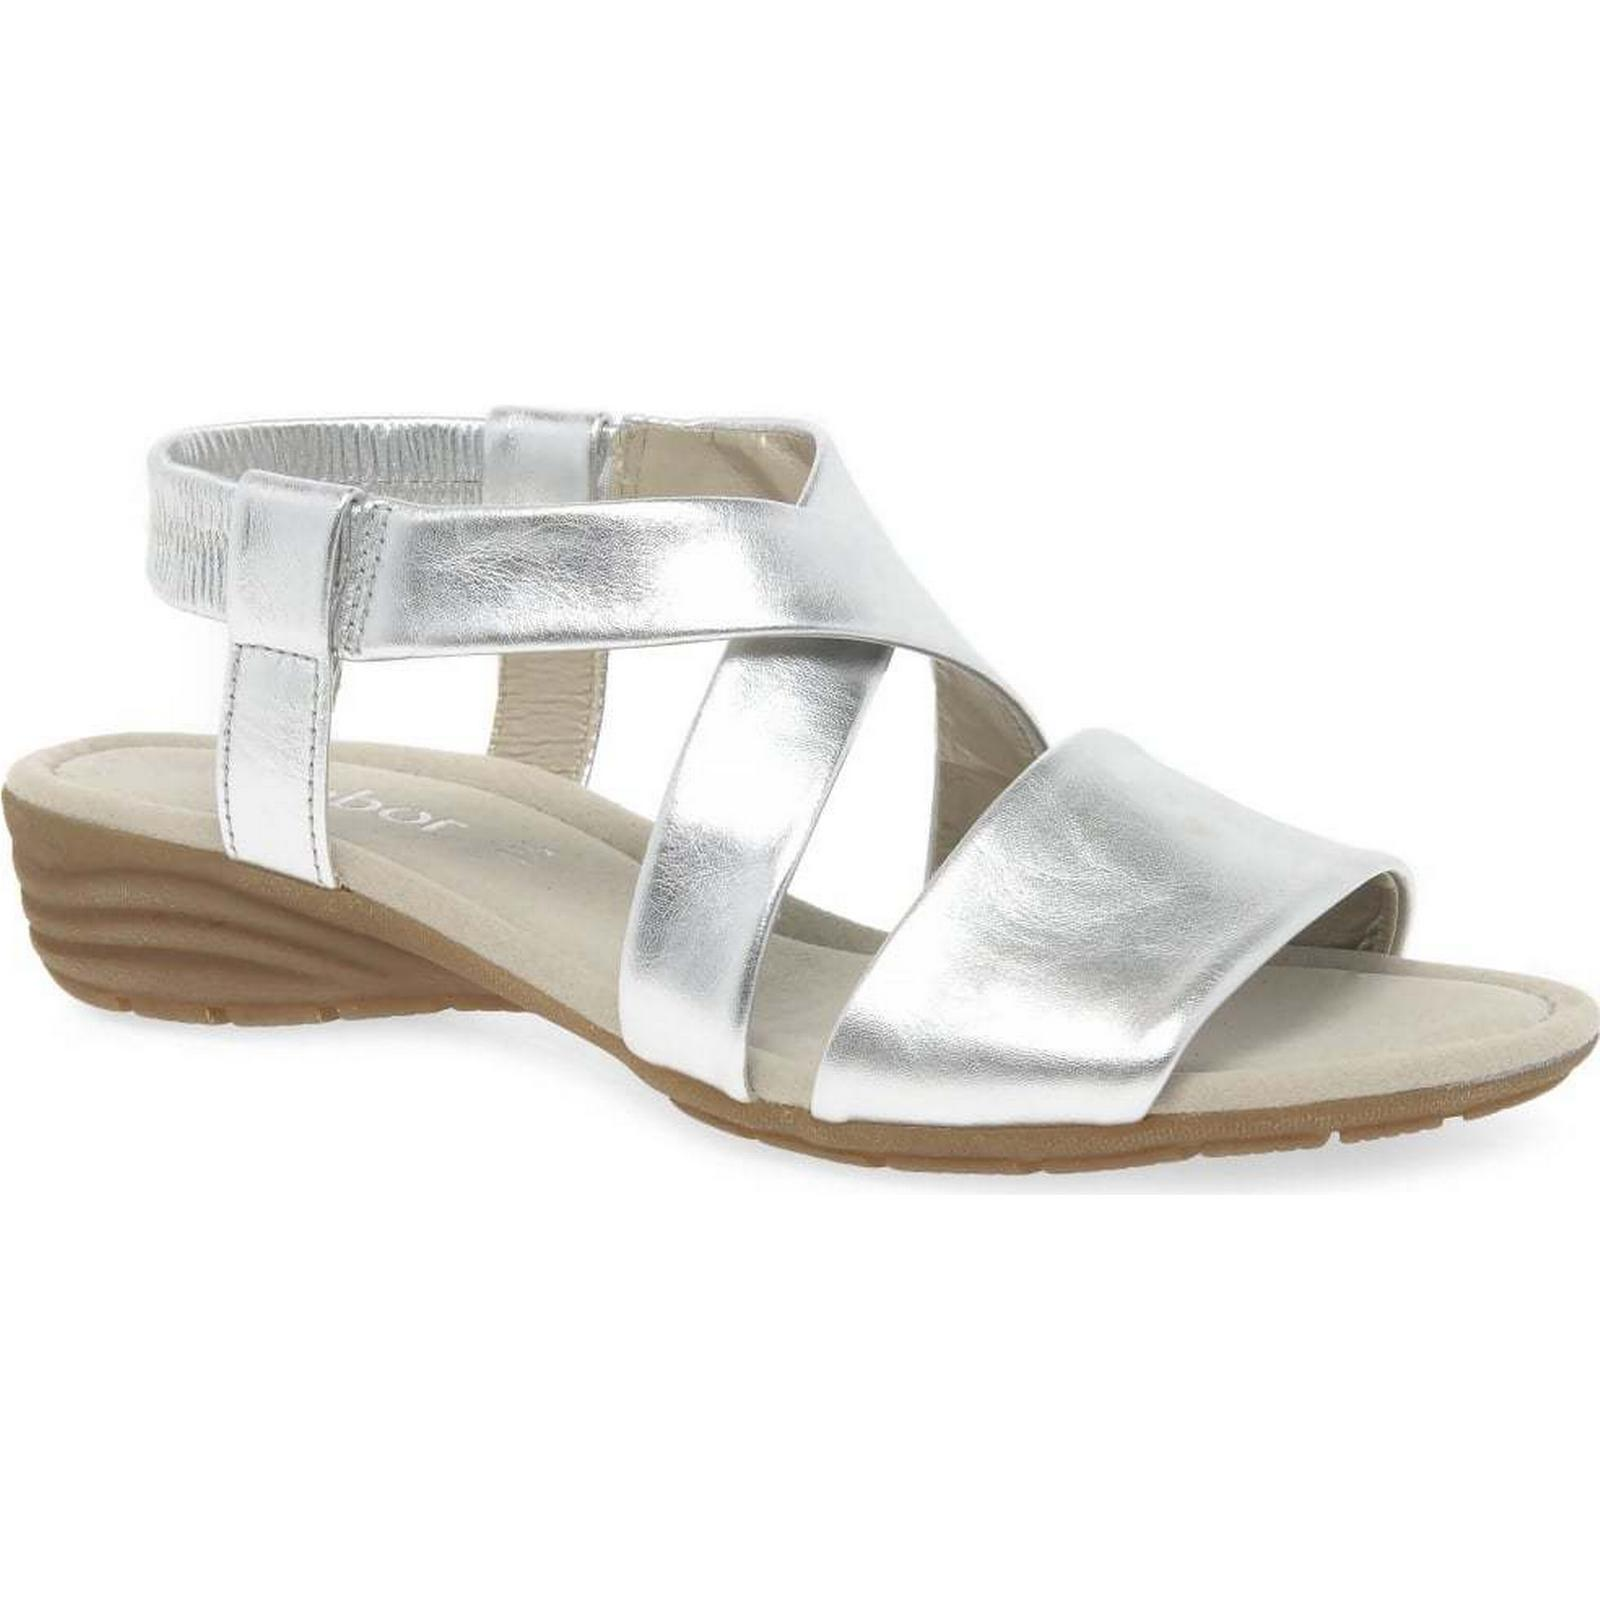 Gabor Ensign Silver, Womens Casual Sandals Colour: Silver, Ensign Size: 8 c9f292